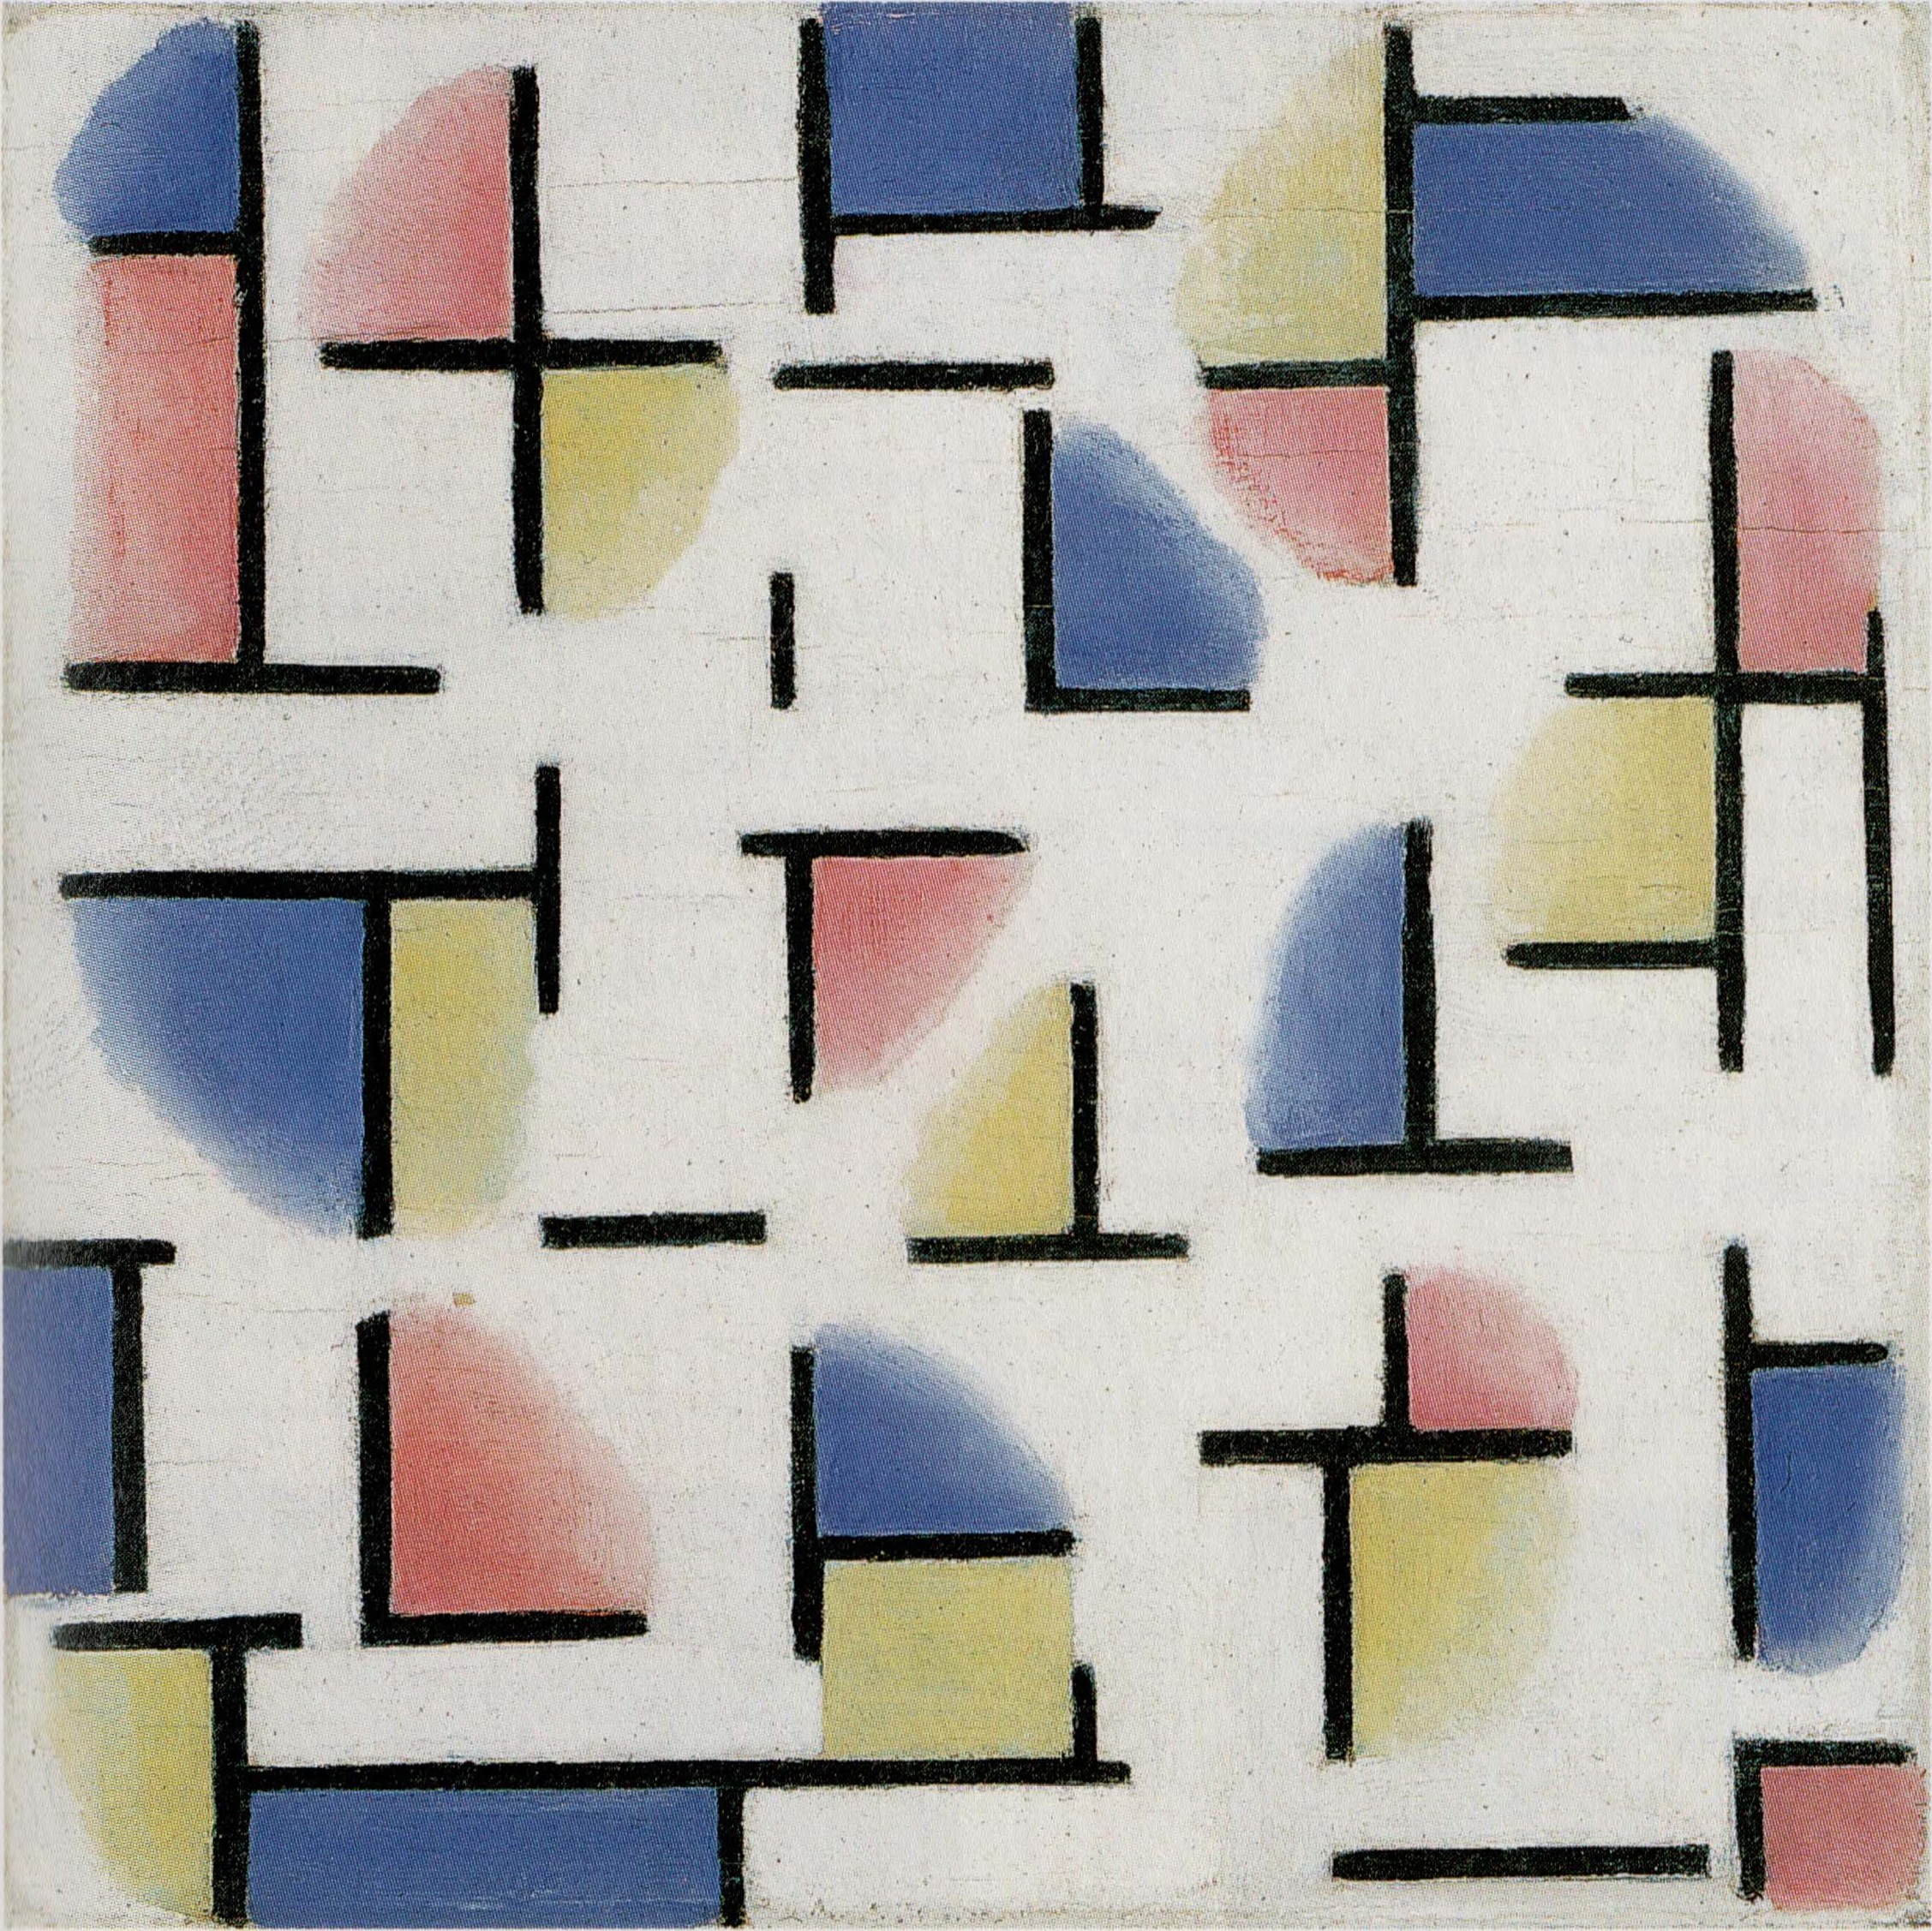 Variation on Composition XIII, 1918 — Theo van Doesburg, Cincinnati Art Museum